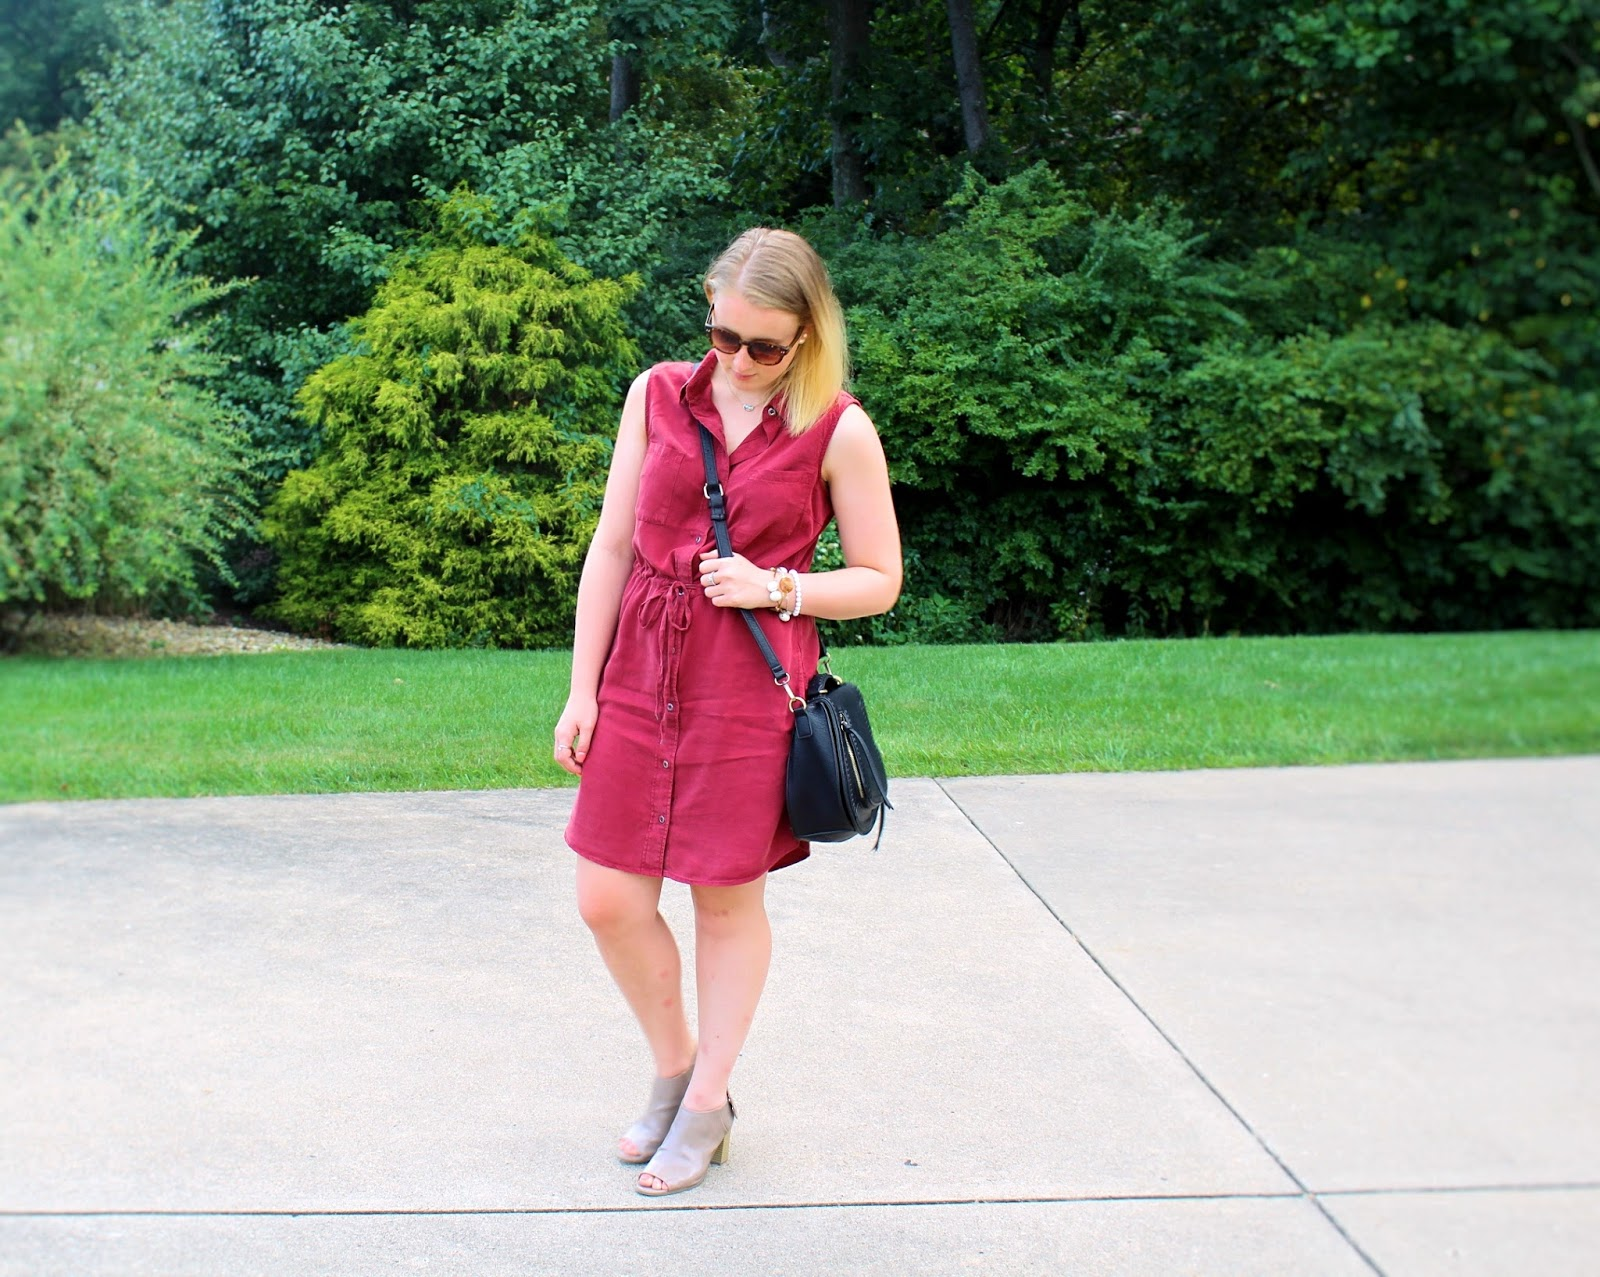 Fall Preview: The Utility dress